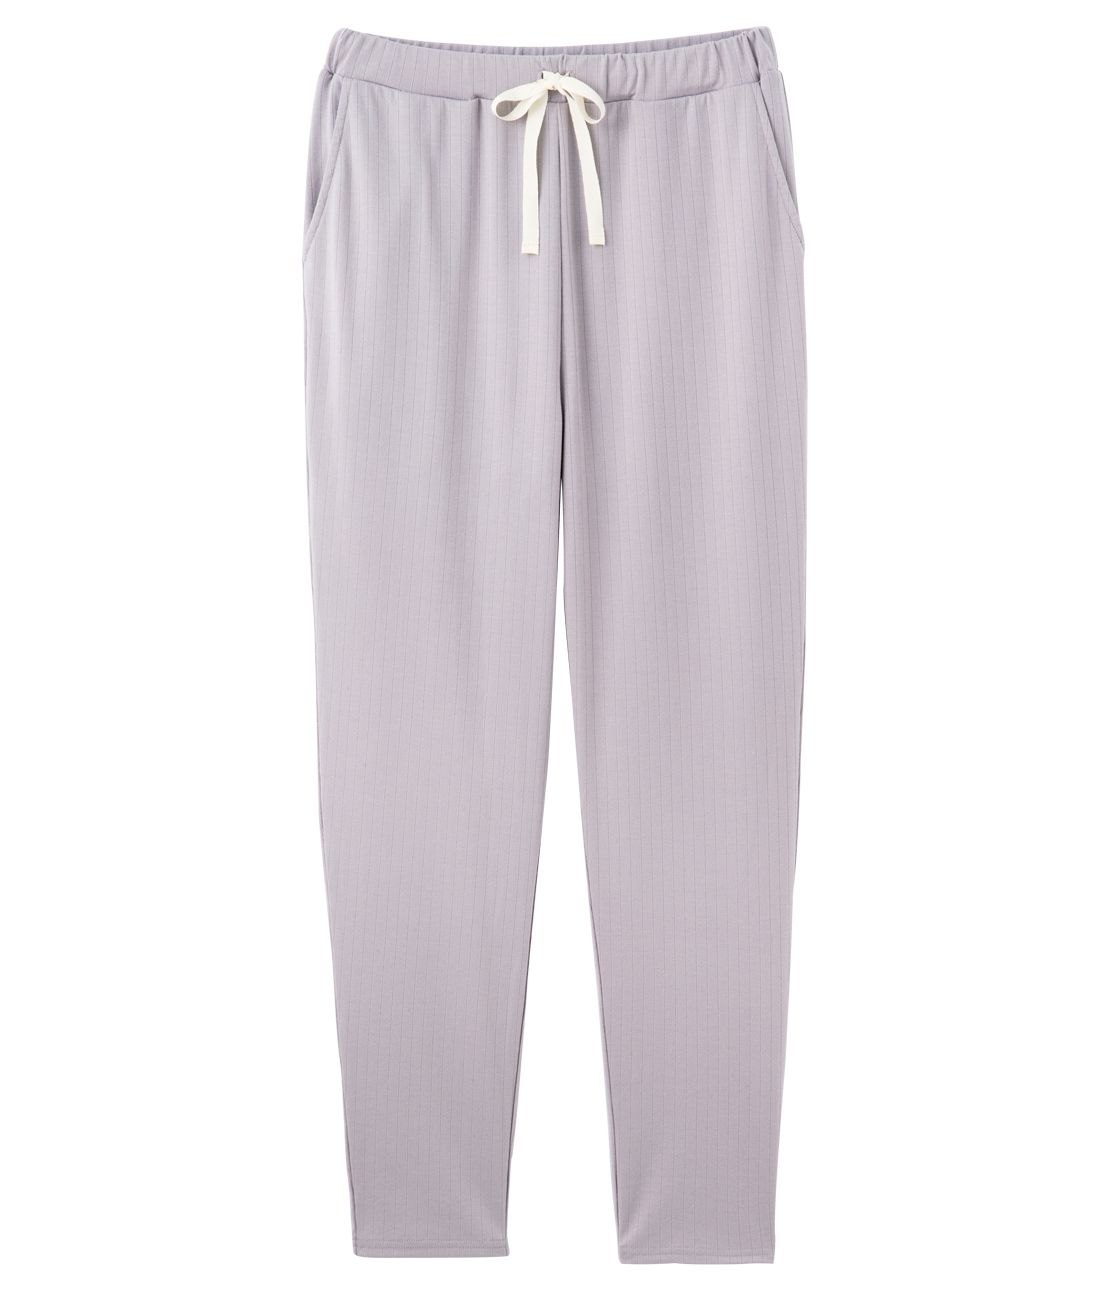 Jersey relax pants to wear to the girls of the day